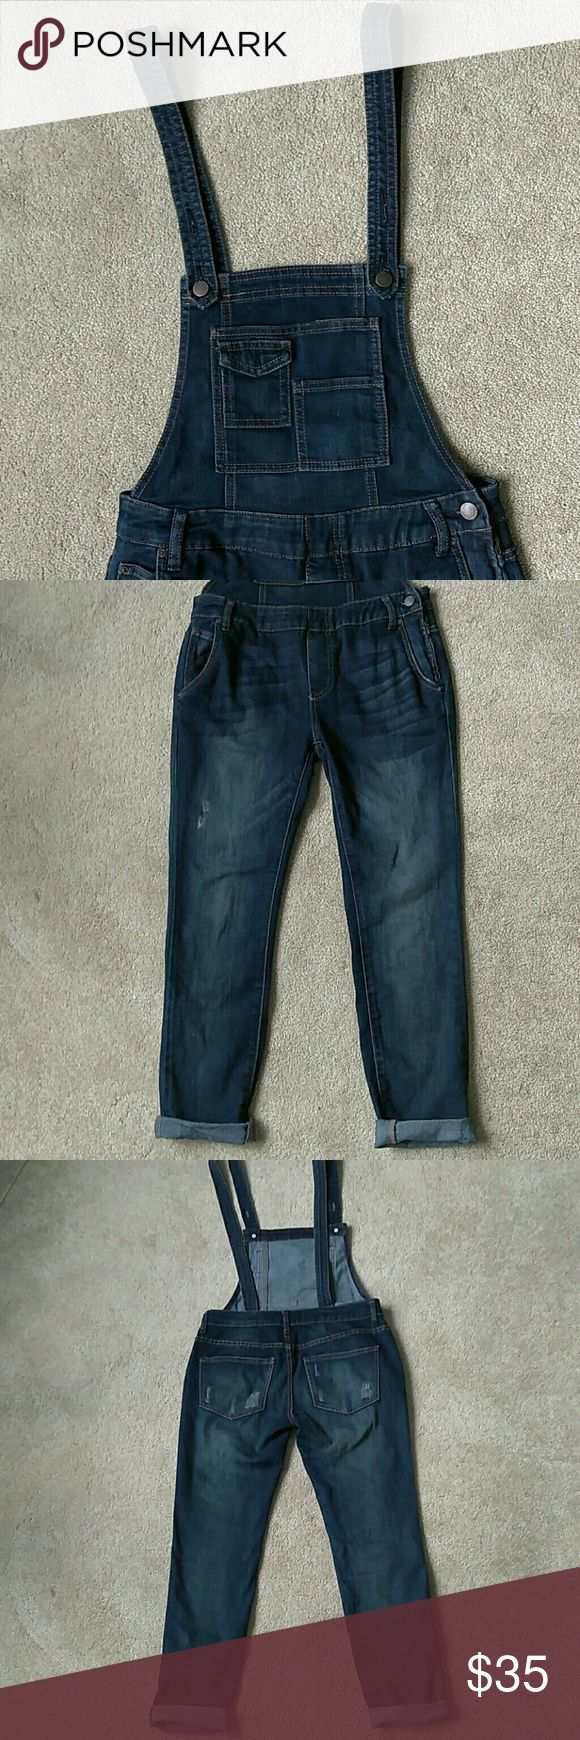 FREE PEOPLE Dark Wash Jeans Overalls Size 25 / 0 FREE PEOPLE Dark Wash Jeans Overalls. Size 25 / 0. Cute Free People Overalls. Free People Dark Wash Jeans. Free People Jeans Overalls